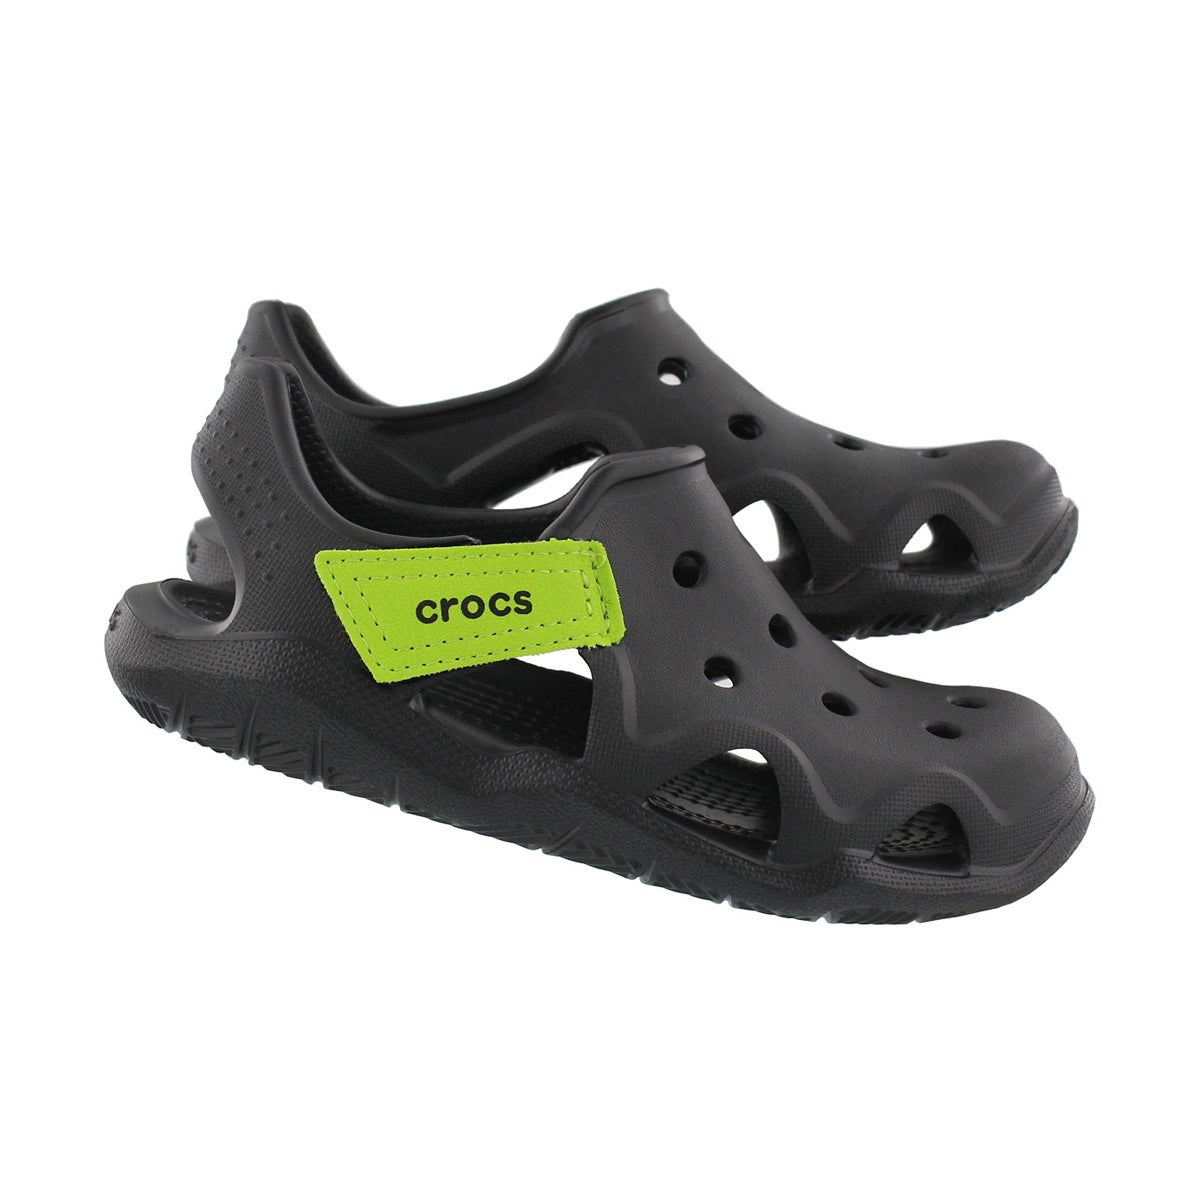 Bys SwiftwaterWave blk/grn casual sandal